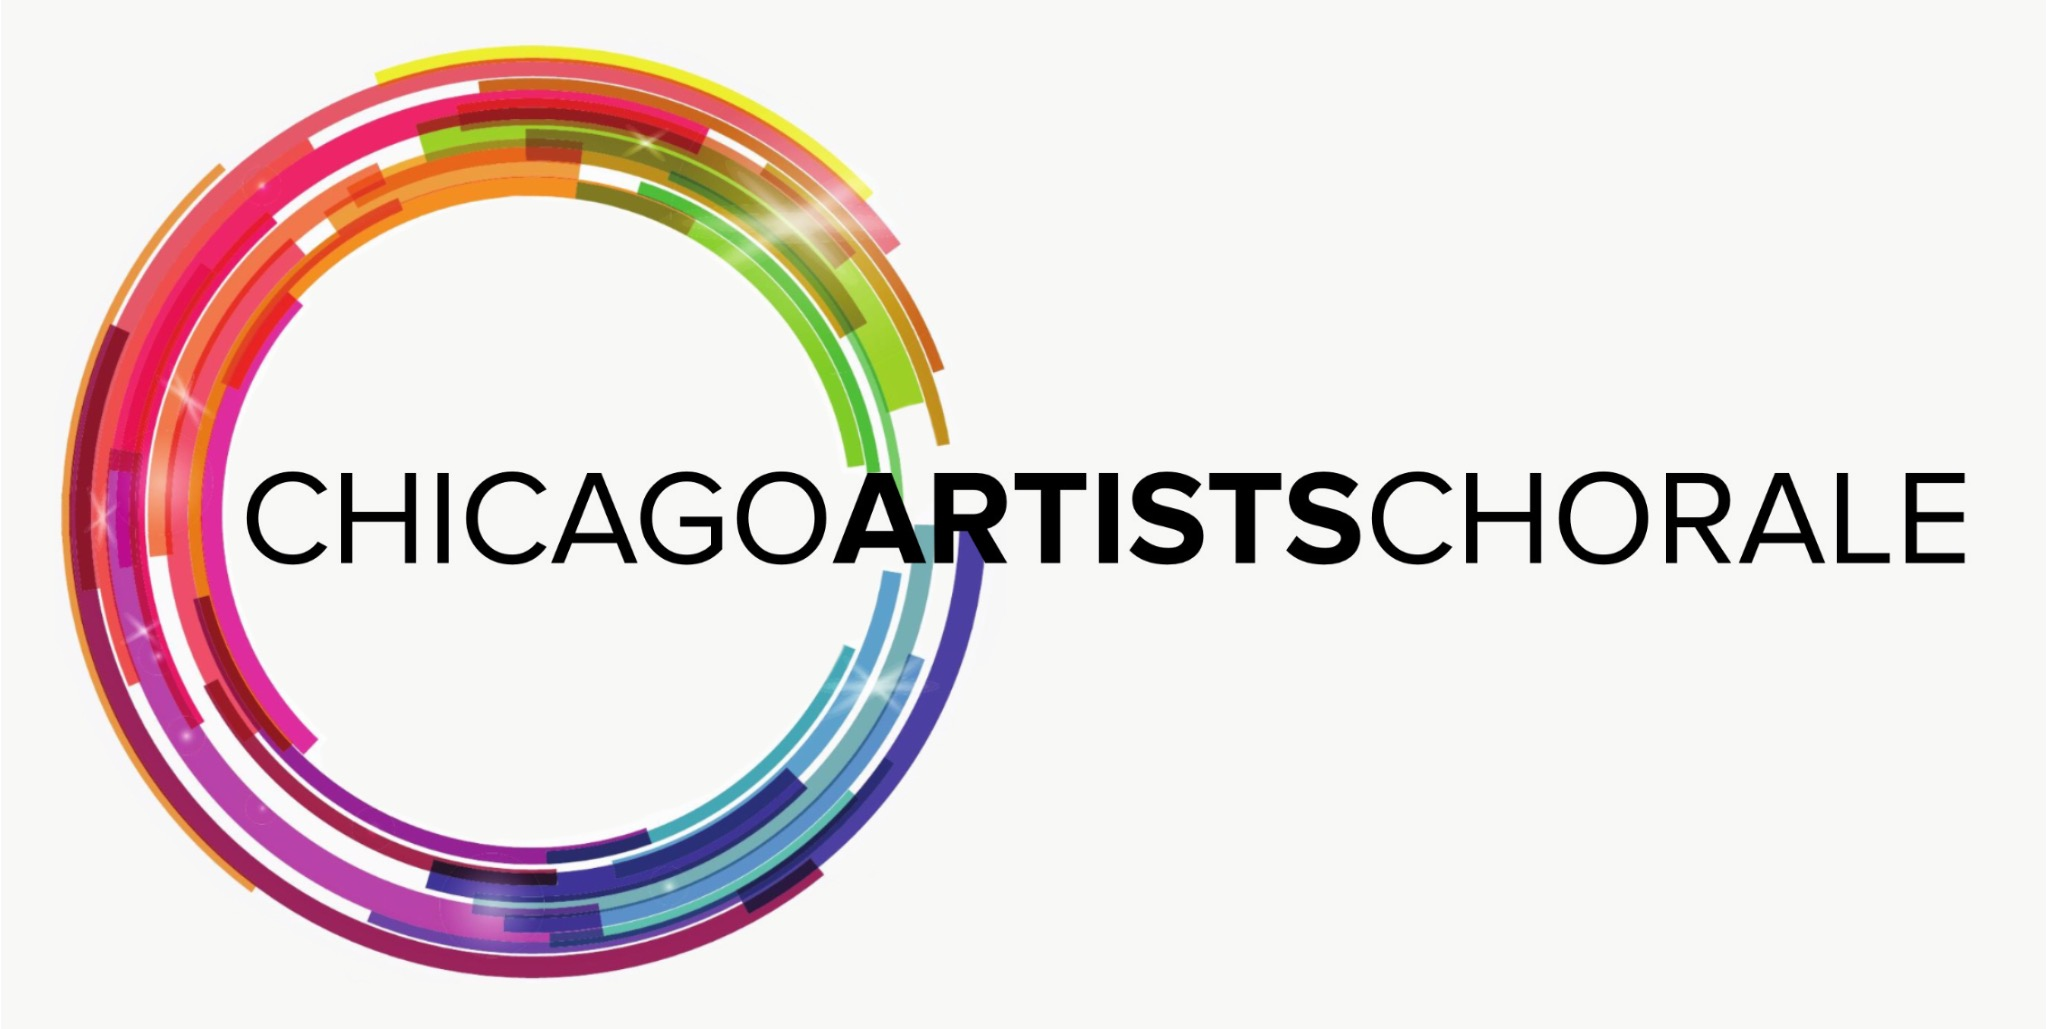 Chicago Artists Chorale logo